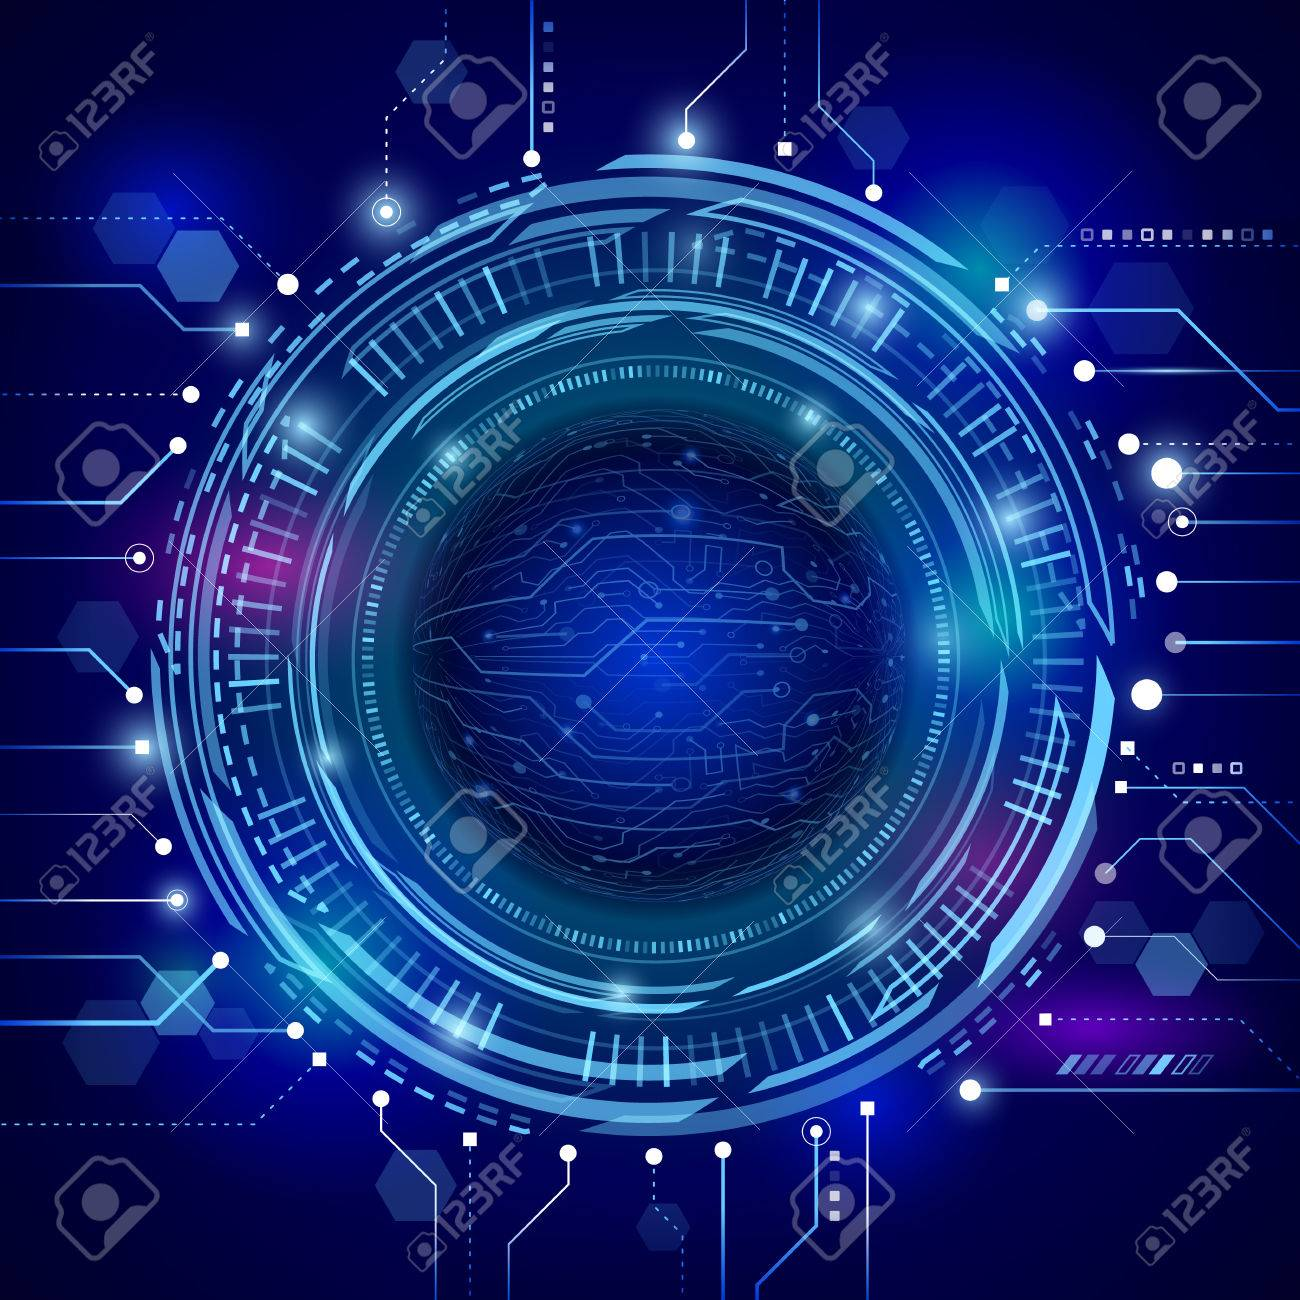 Futuristic Graphic Vector Digital Abstract Pictures Www Circuit Board Design Grunge Stock Photos Photo Hi Tech Communication Concept On The Blue Background